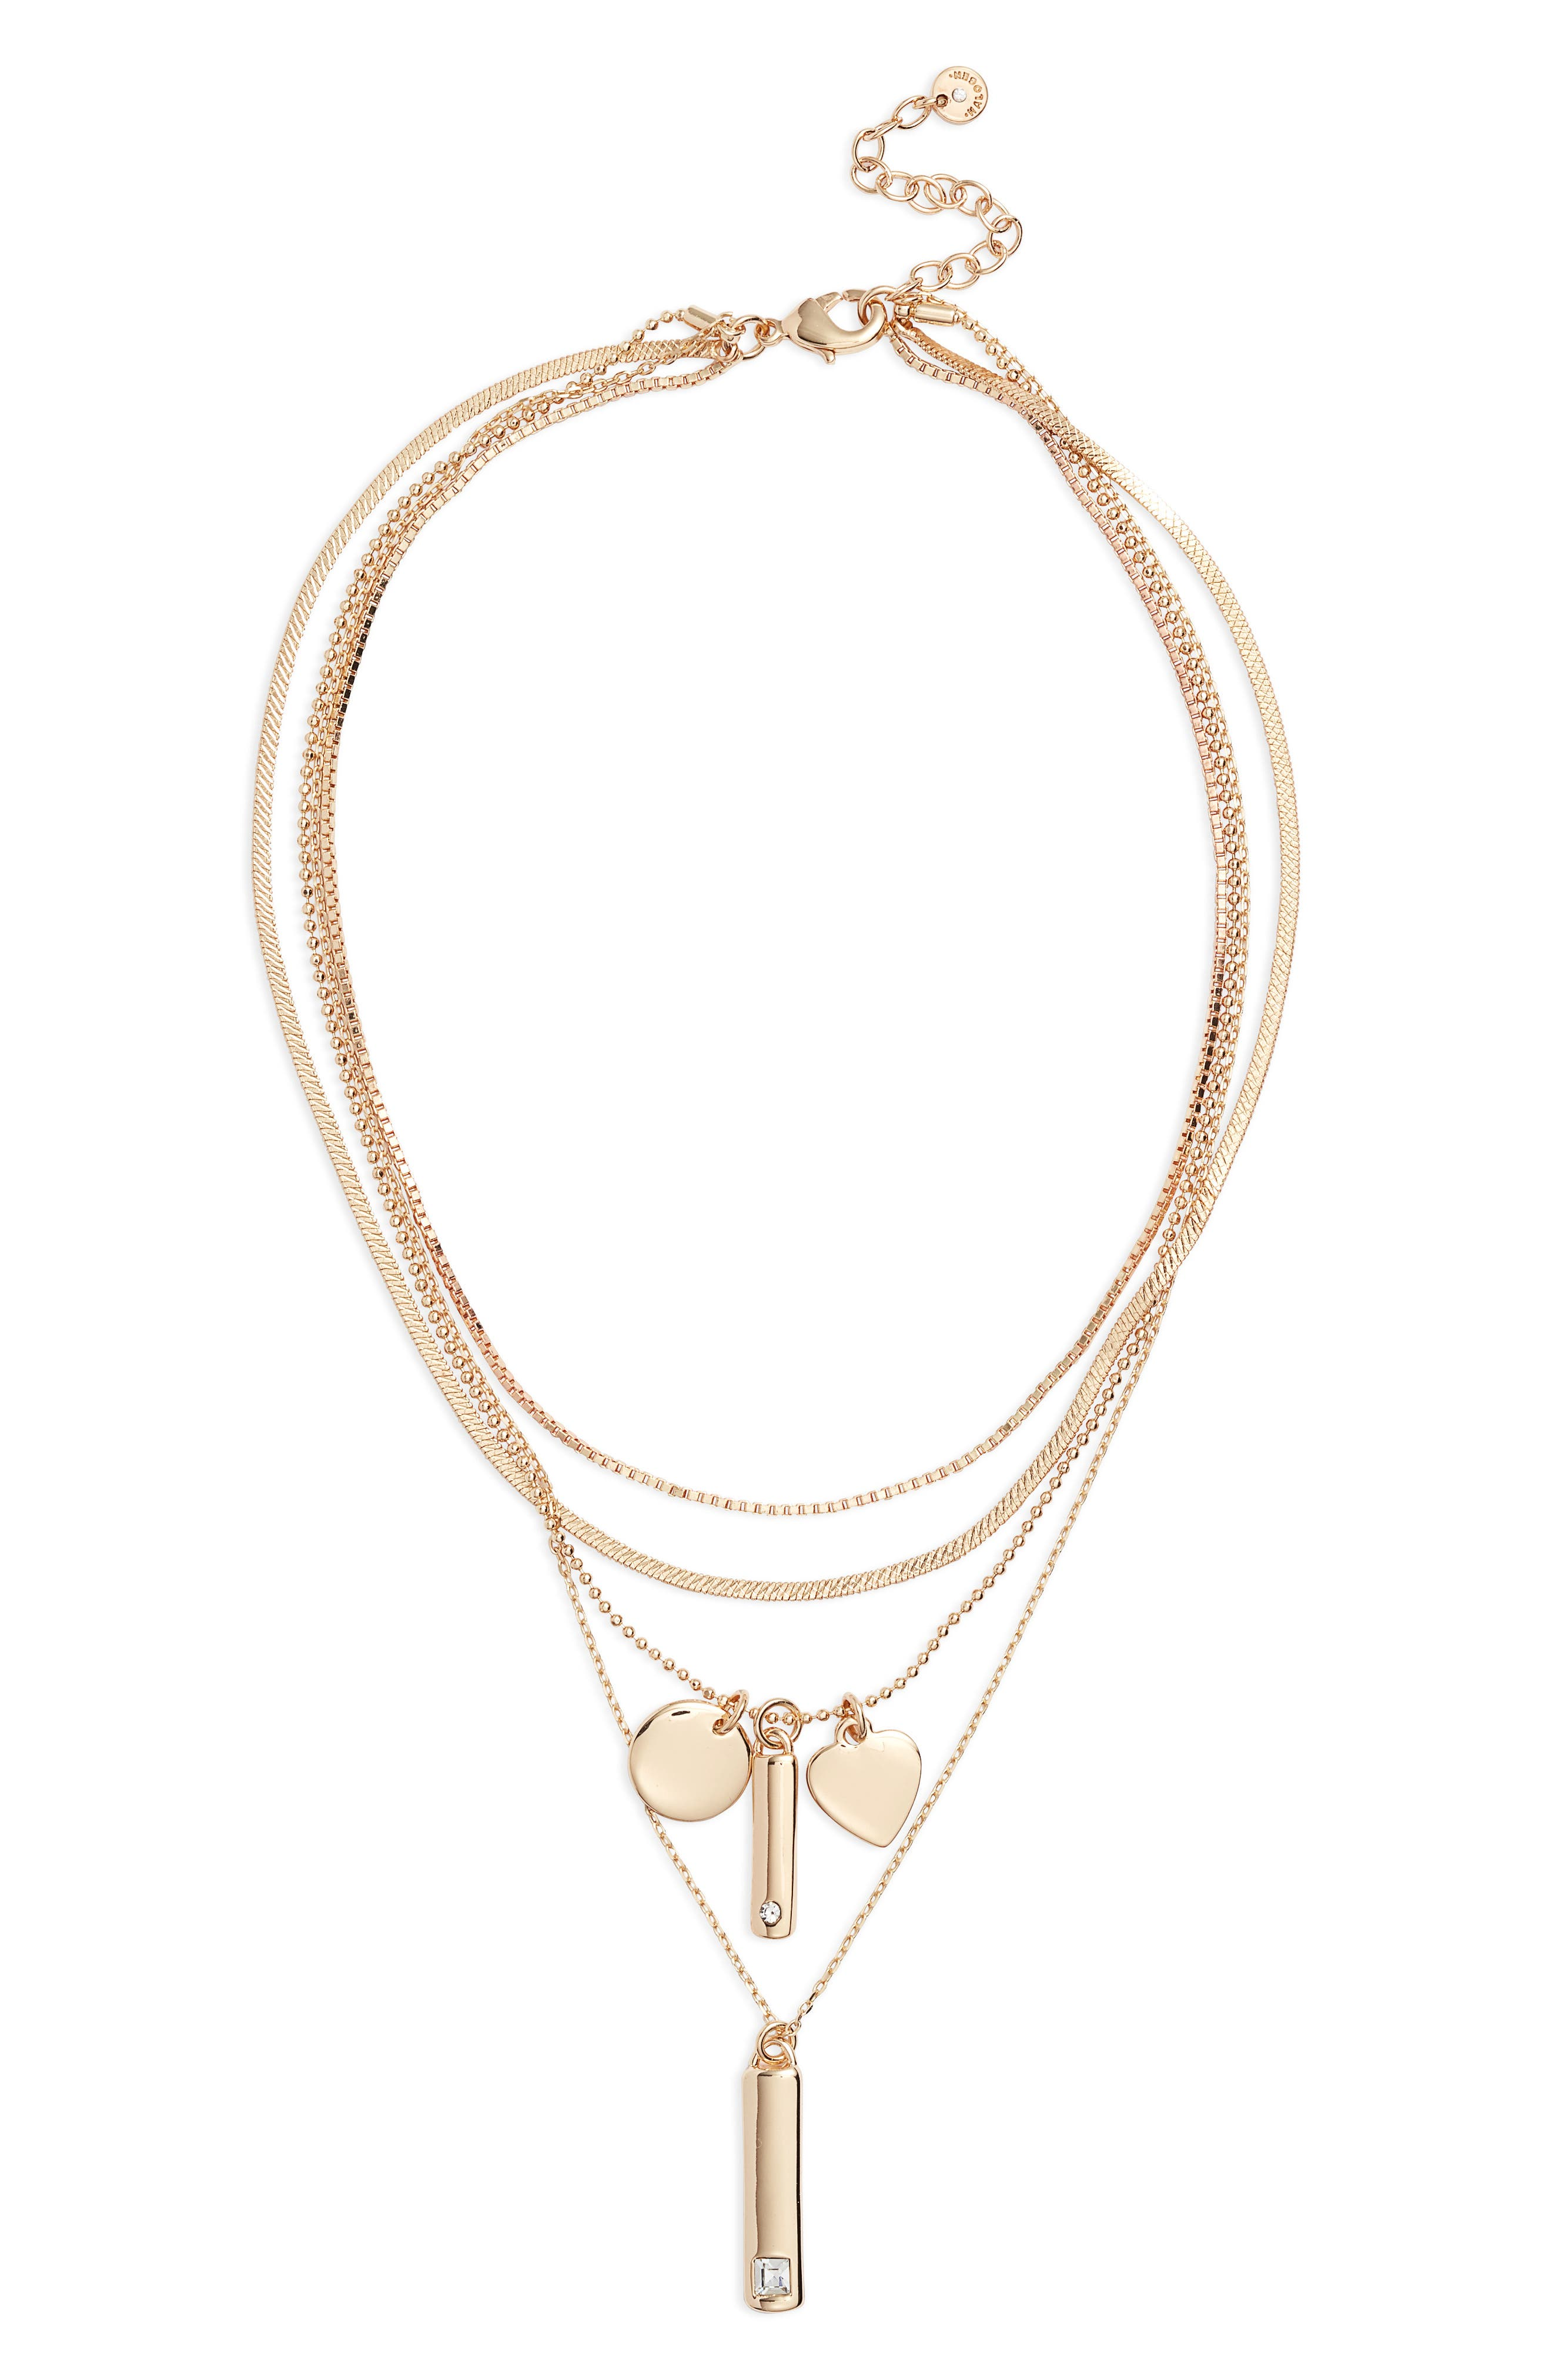 Image of Halogen Tiered Luxe Multi Chain Charm Pendant Necklace